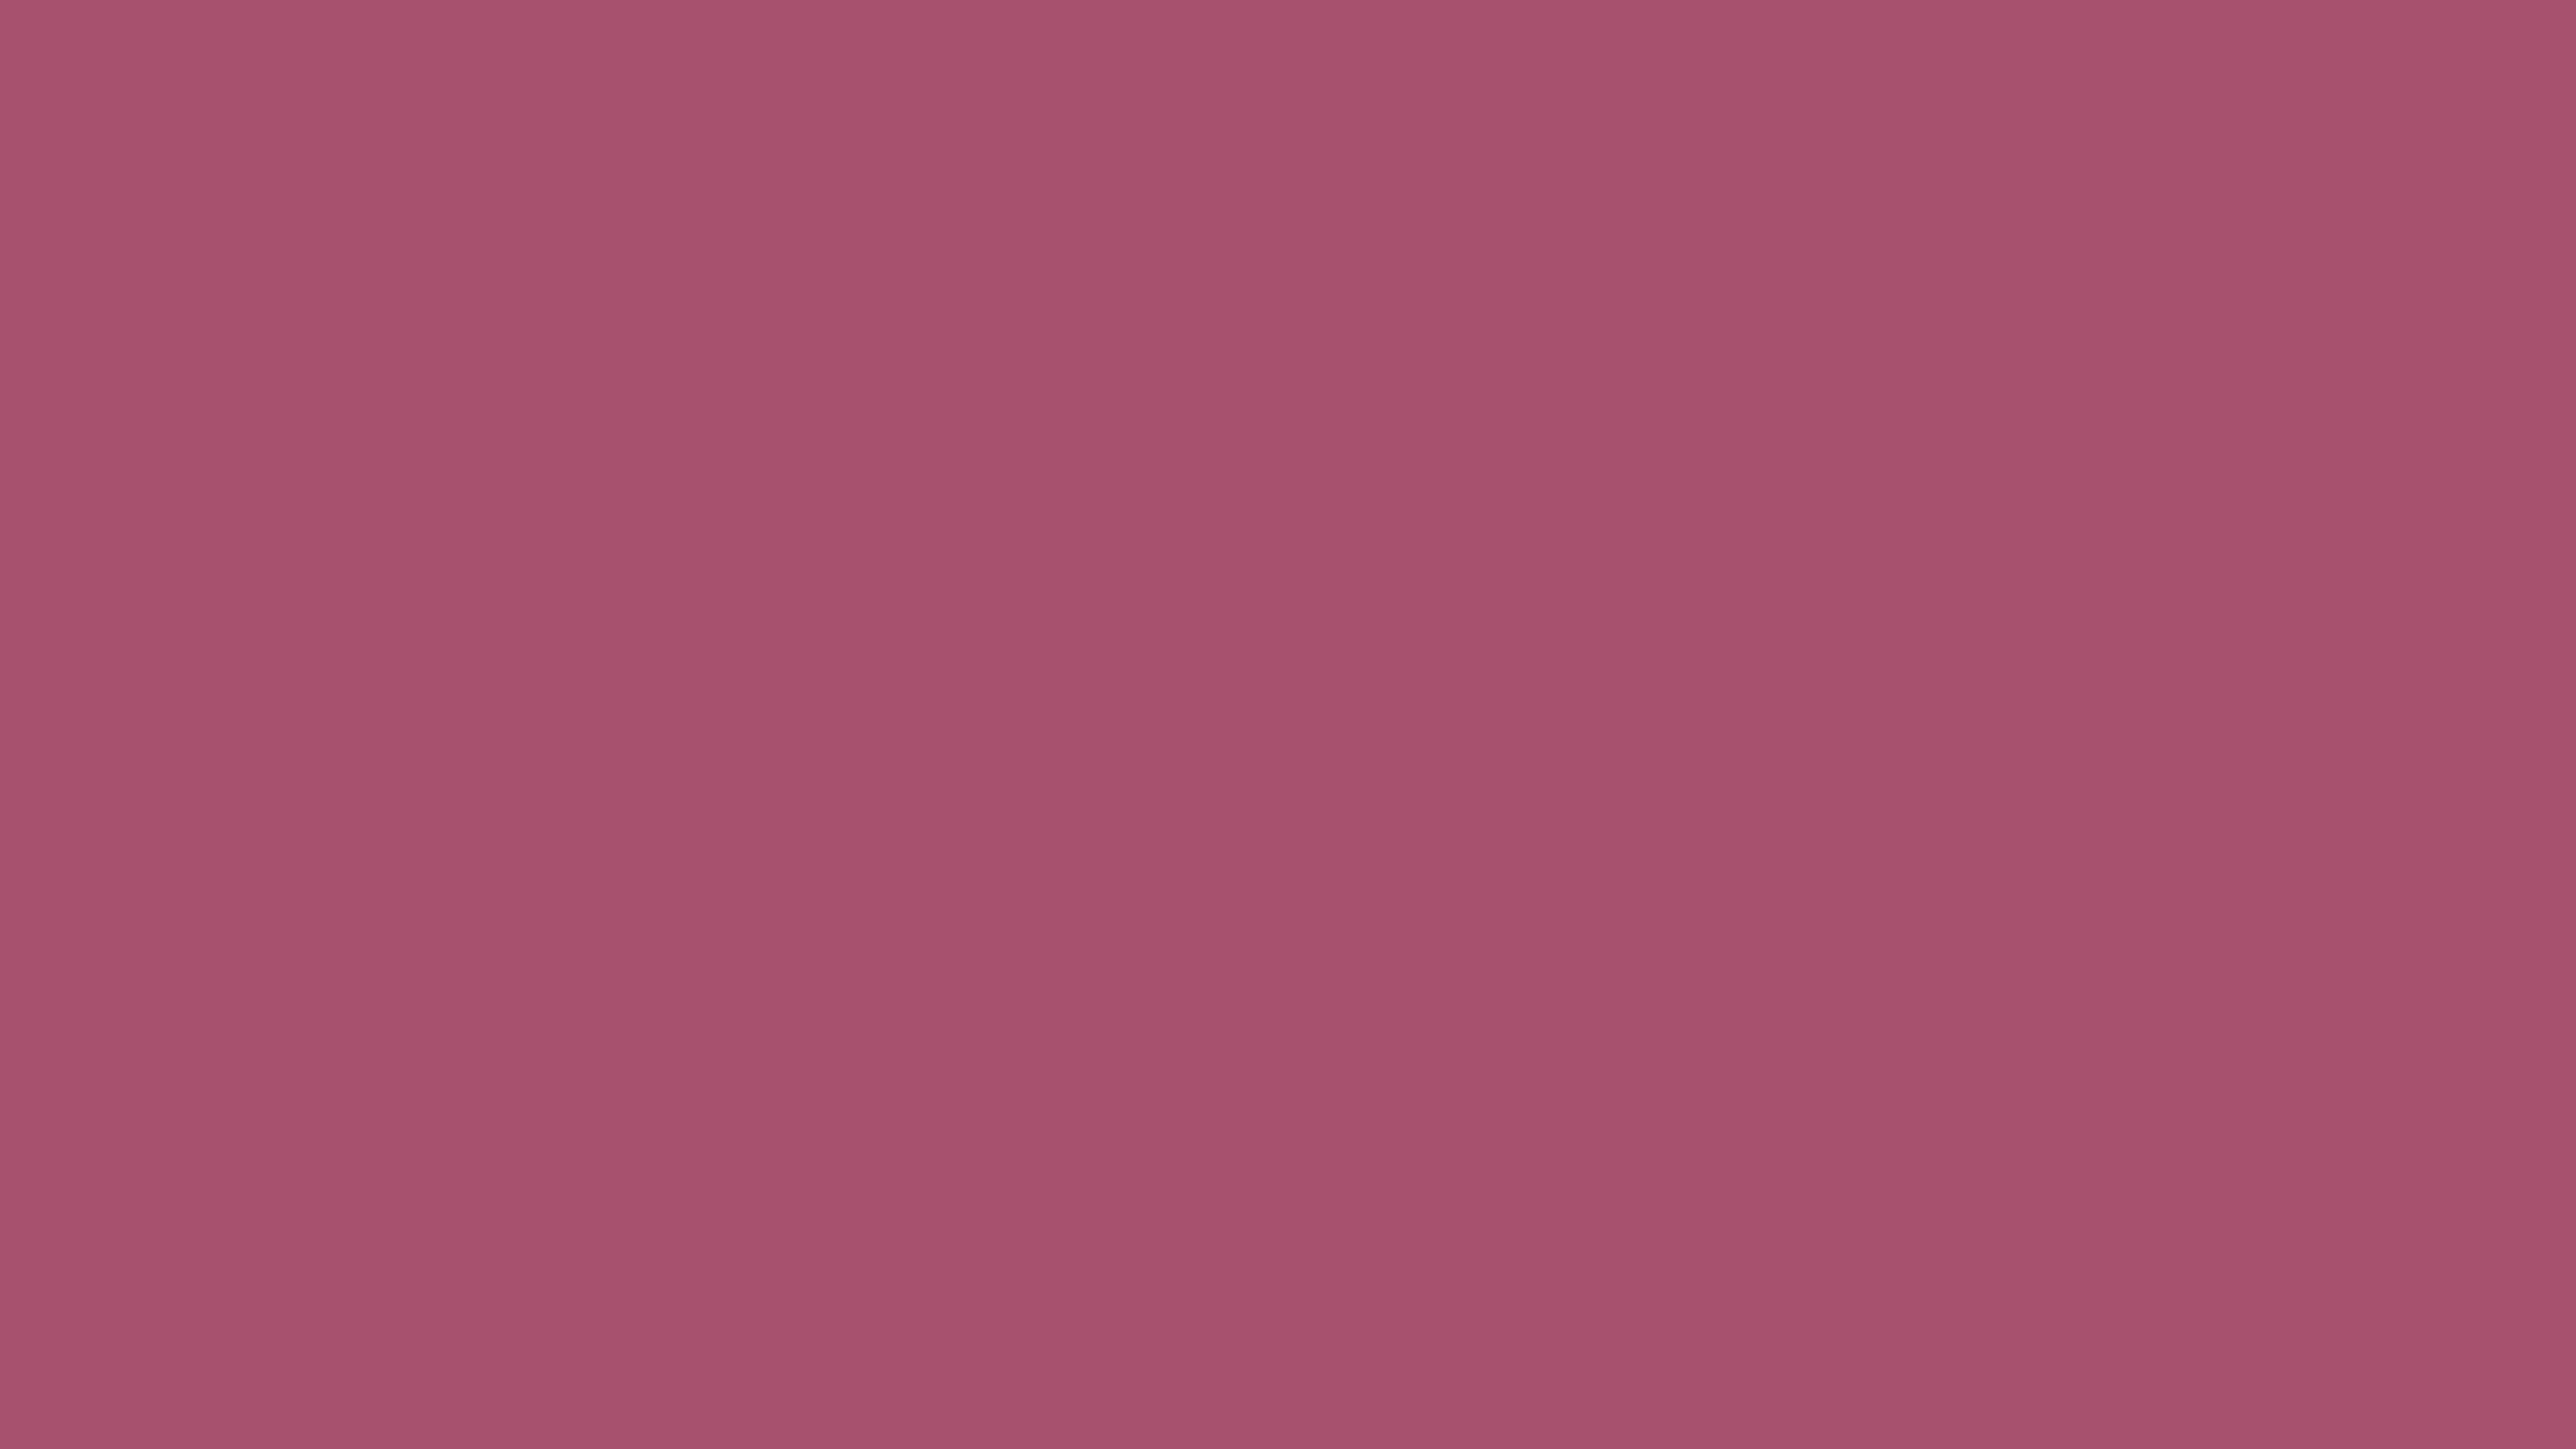 4096x2304 China Rose Solid Color Background